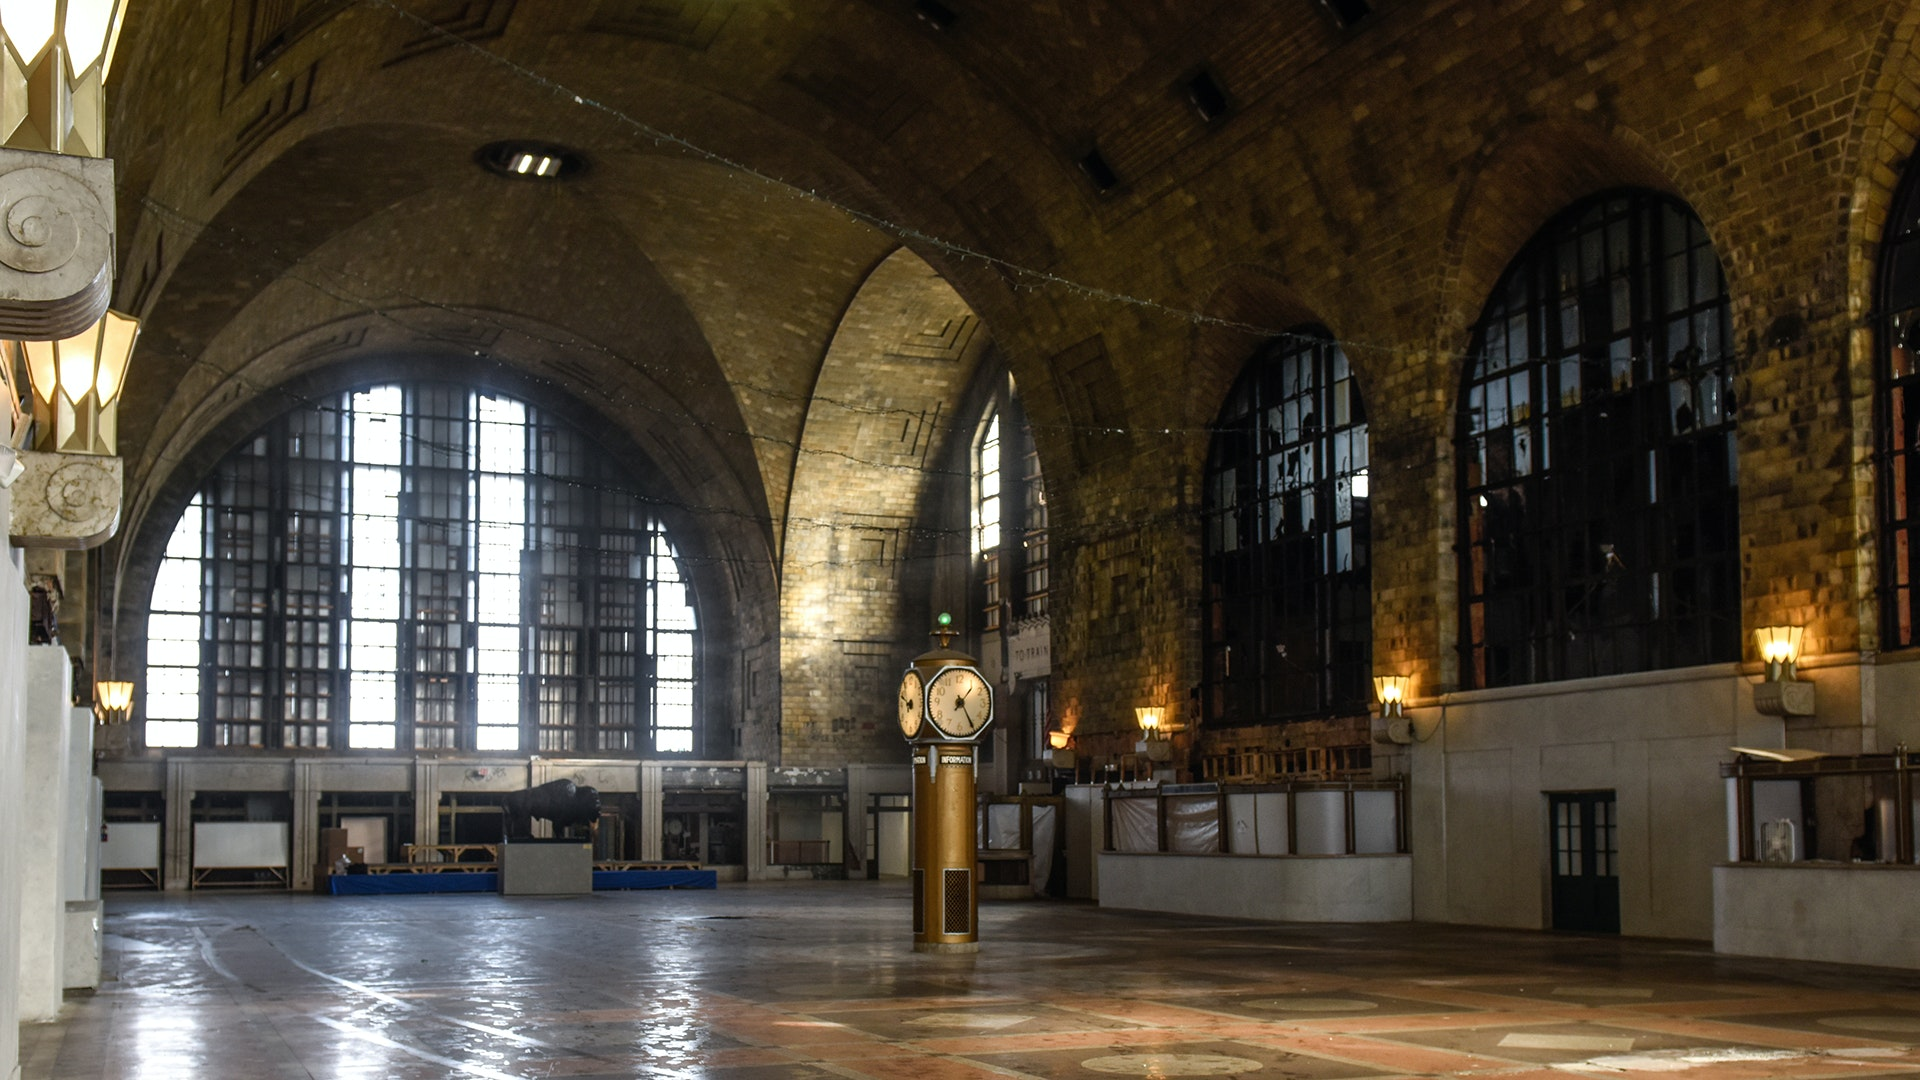 The impressive but dilapitated Central Terminal in Buffalo, New York, made the WMF's 2017 endangered-sites list.